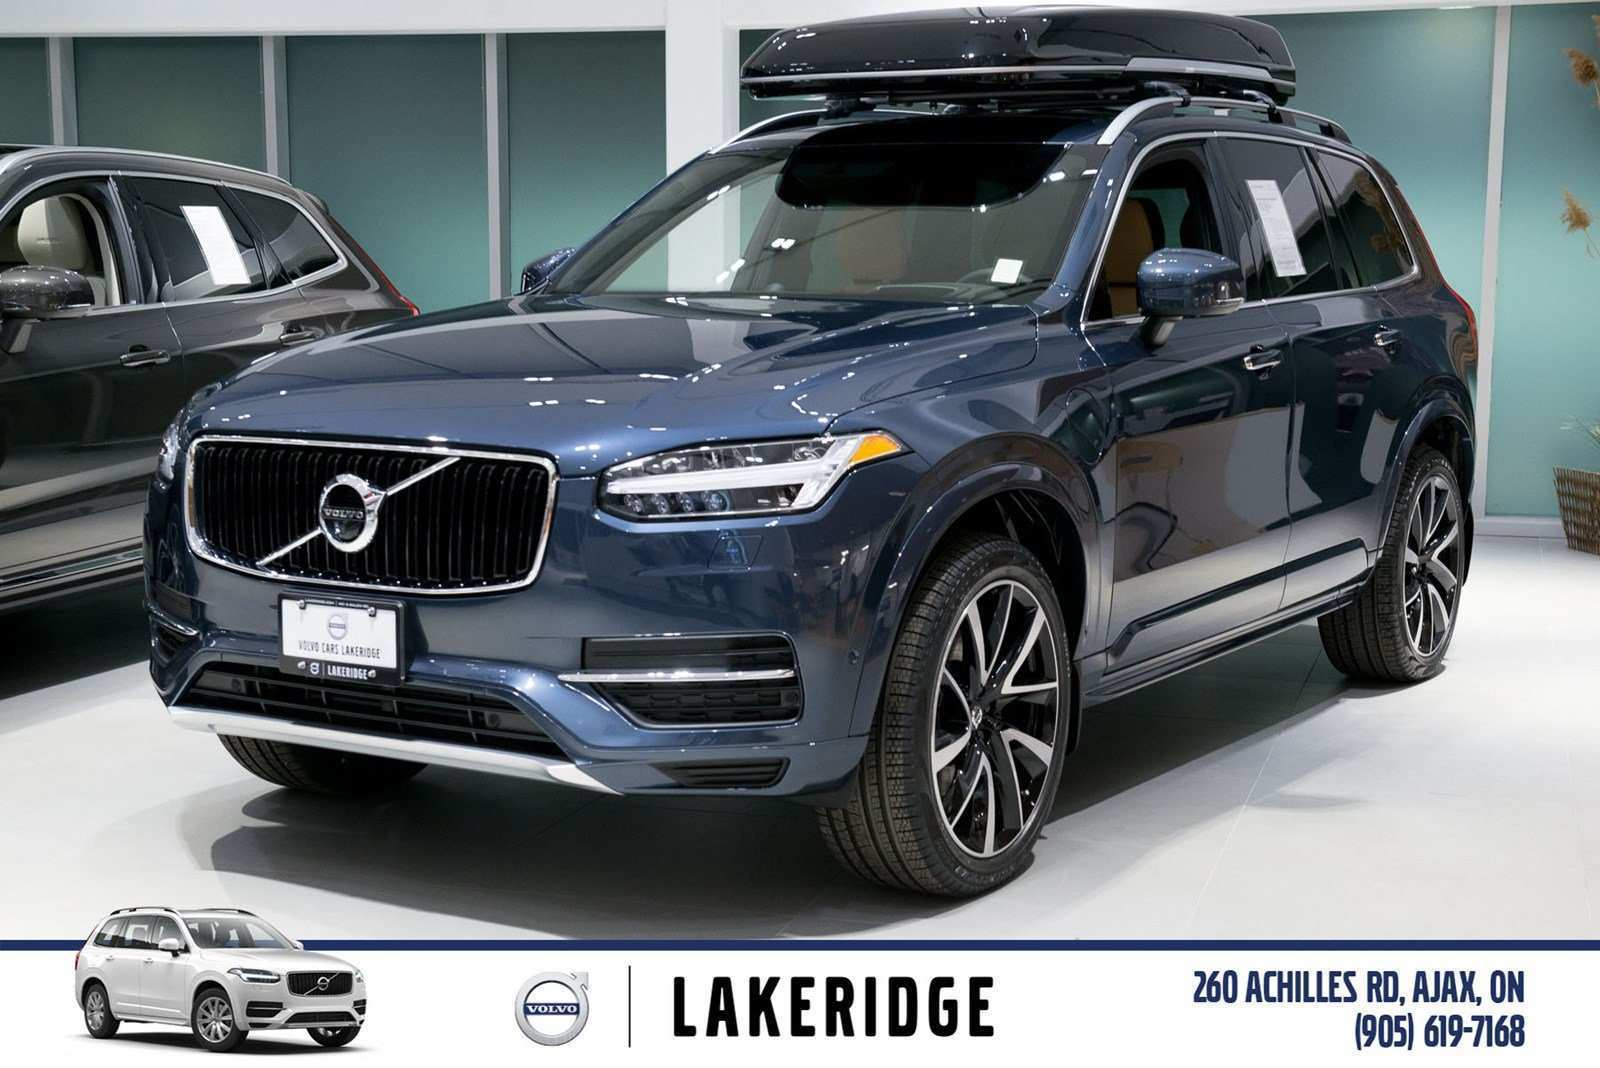 60 All New The Volvo Flying Car 2019 Engine Style by The Volvo Flying Car 2019 Engine